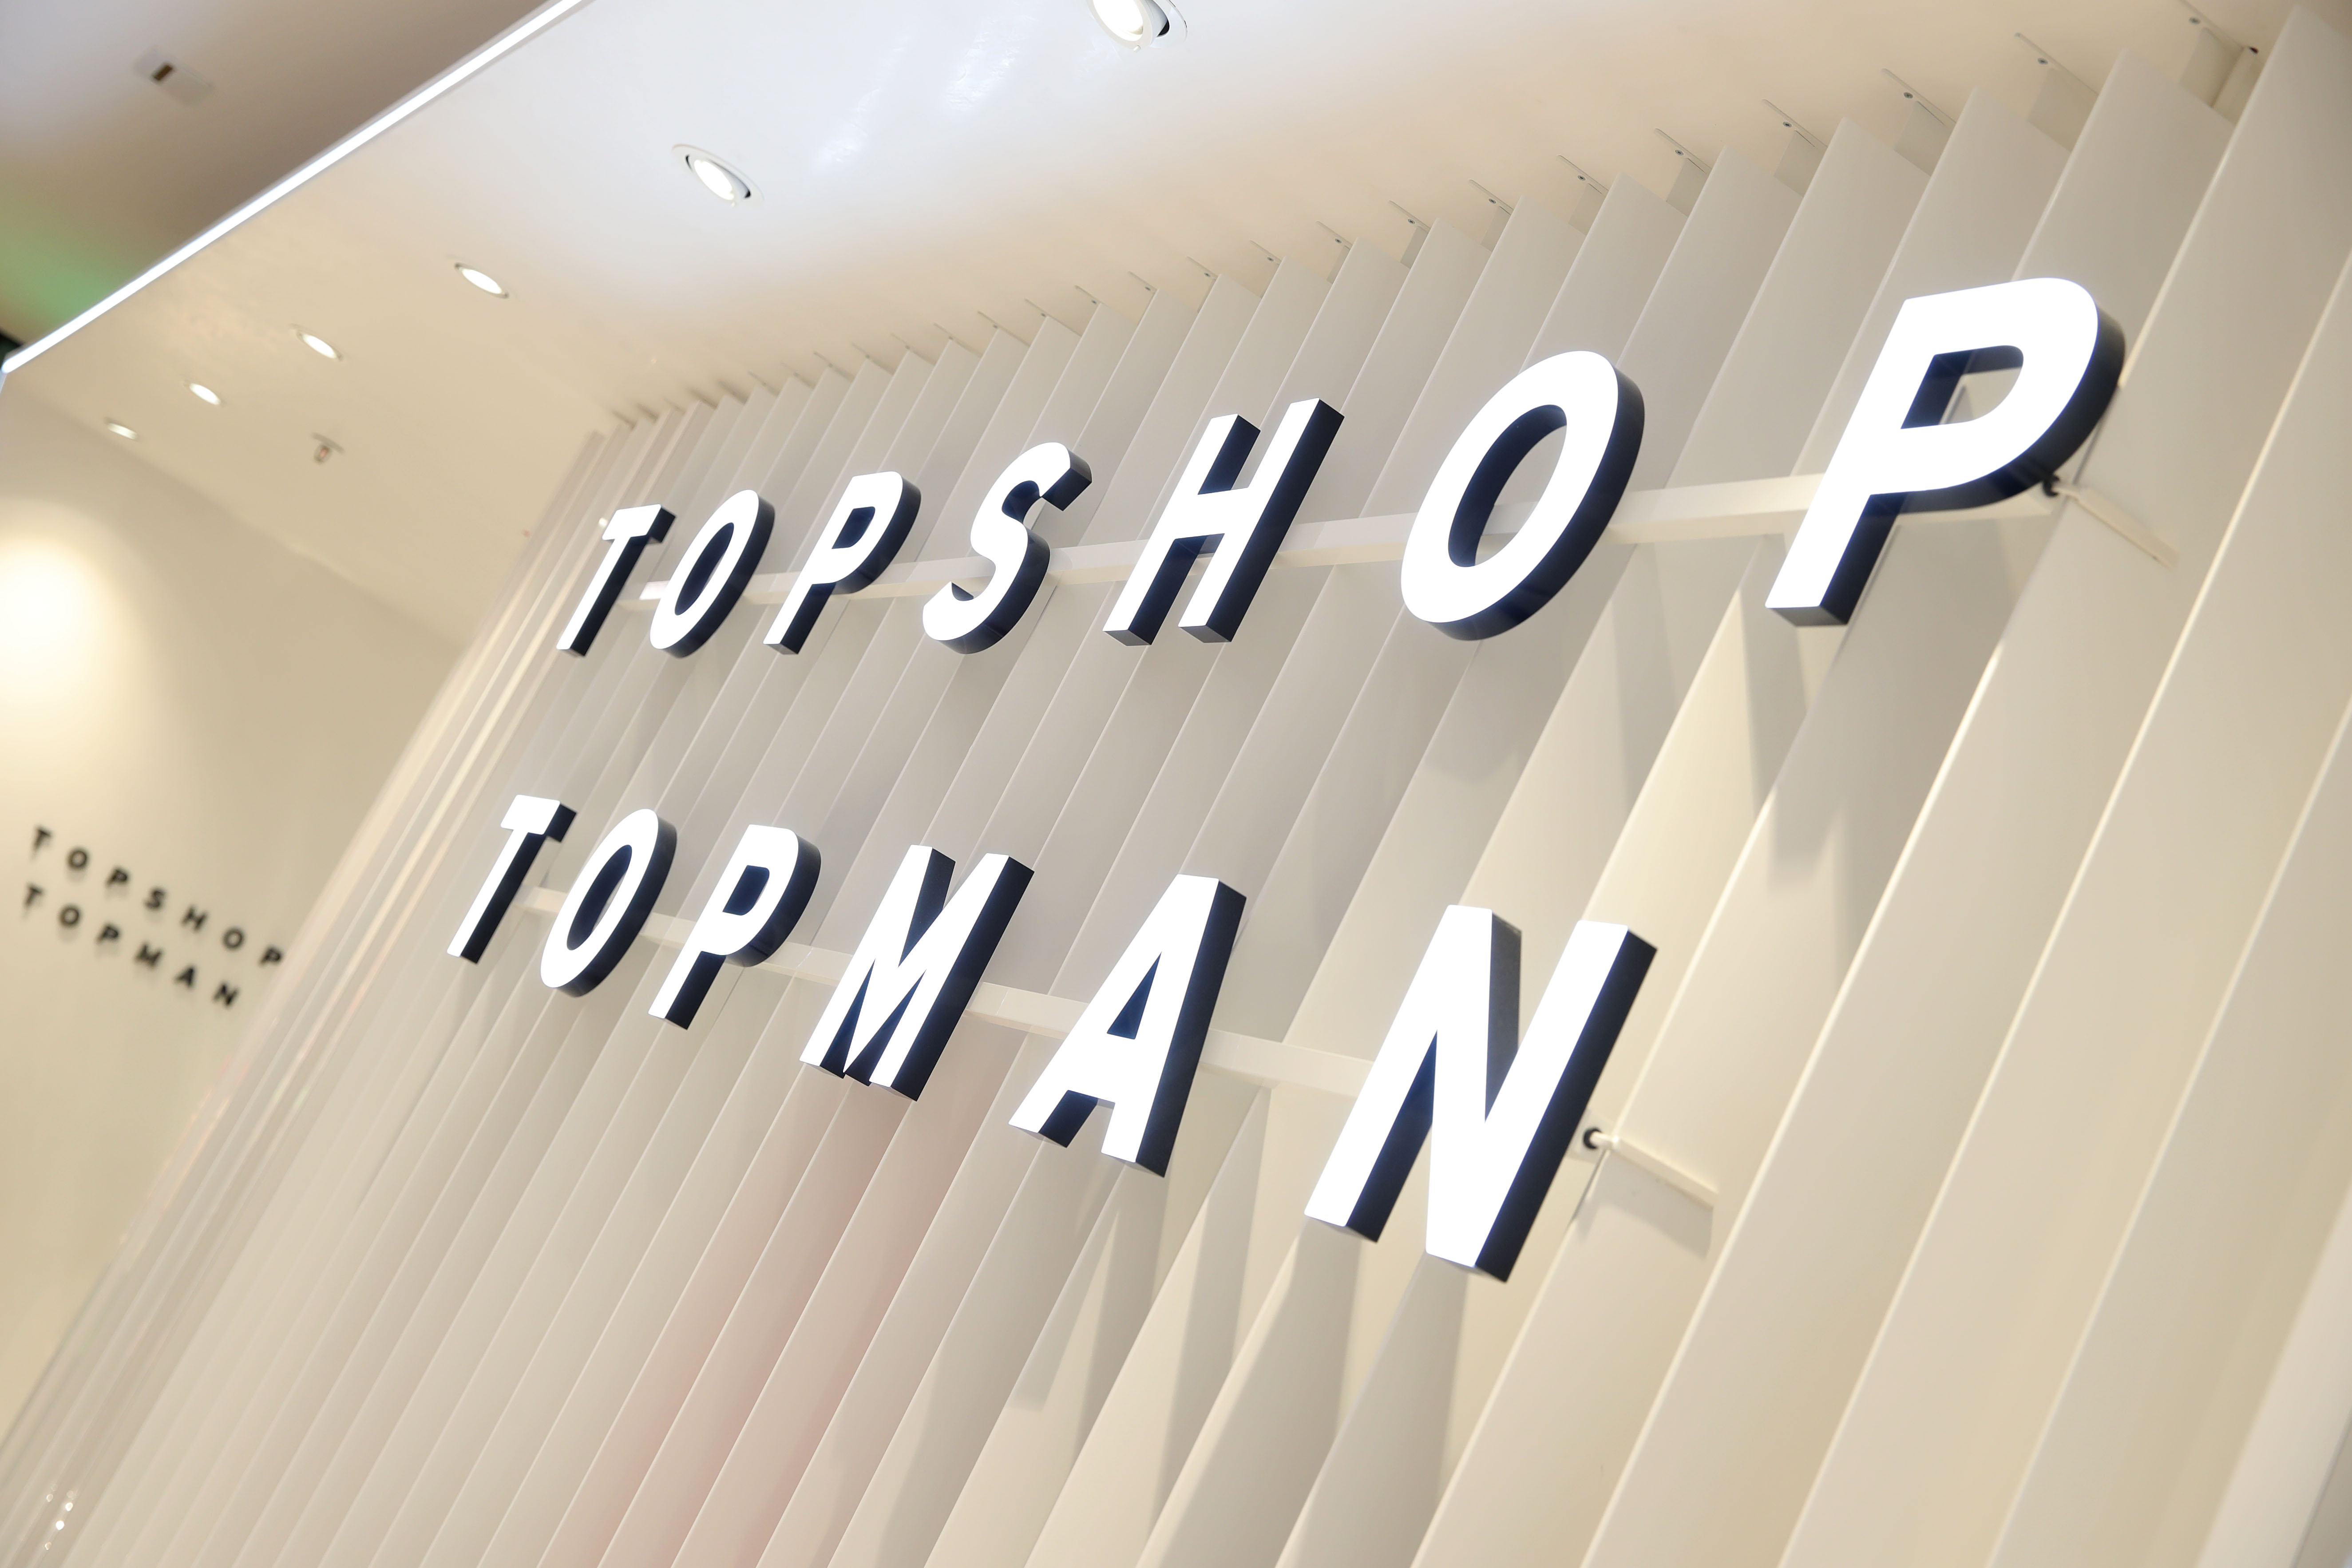 Topshop Is Closing All U.S. Stores thumbnail